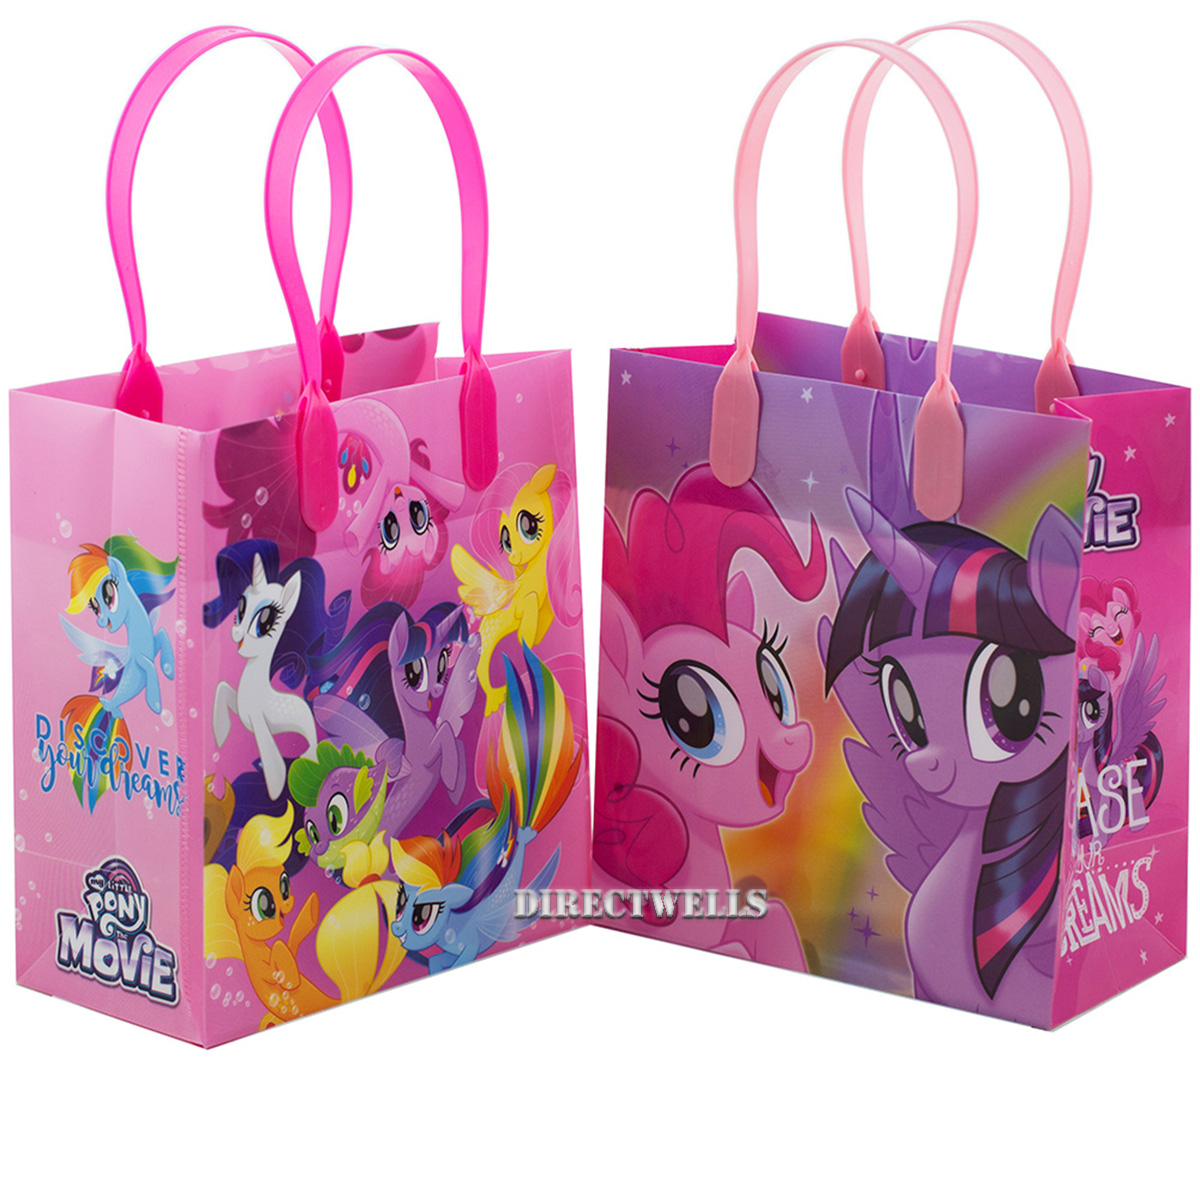 Little Pony Chase Your Dreams 12 Party Favor Reusable Goodie Small Gift Bags